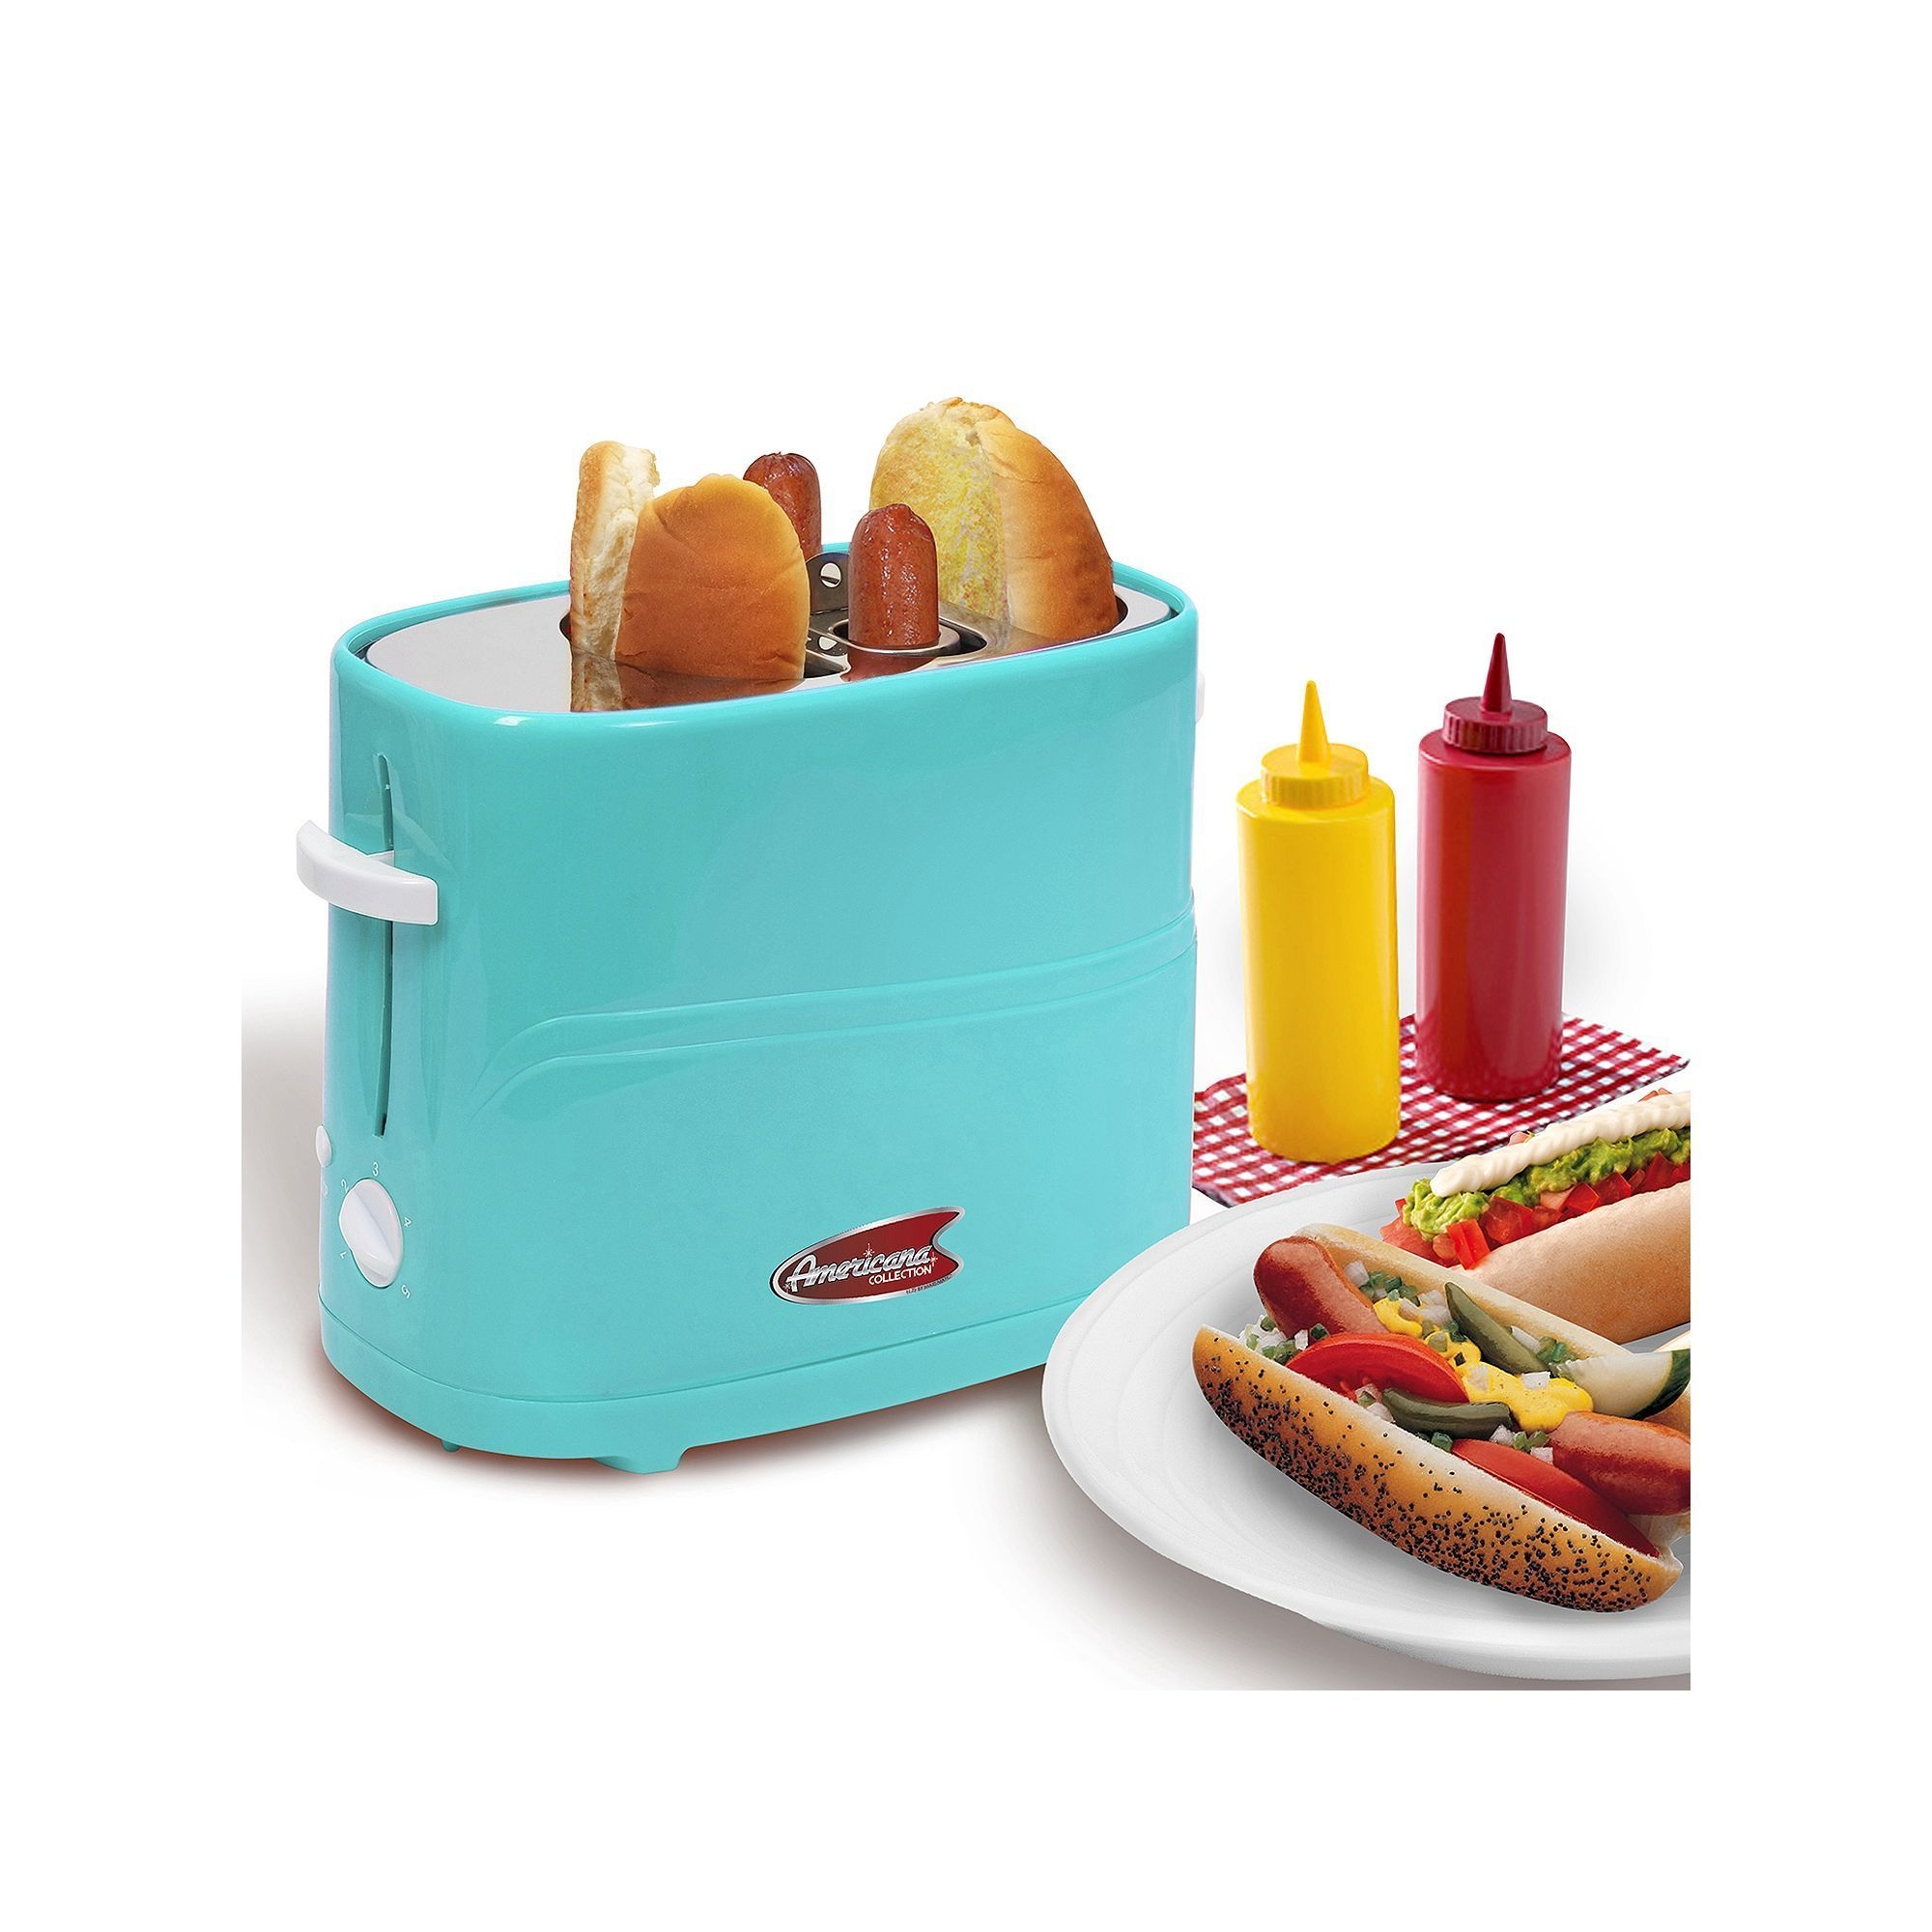 Elite Cuisine Hot Dog Toaster, Red | Dogs, Toaster and Hot dogs